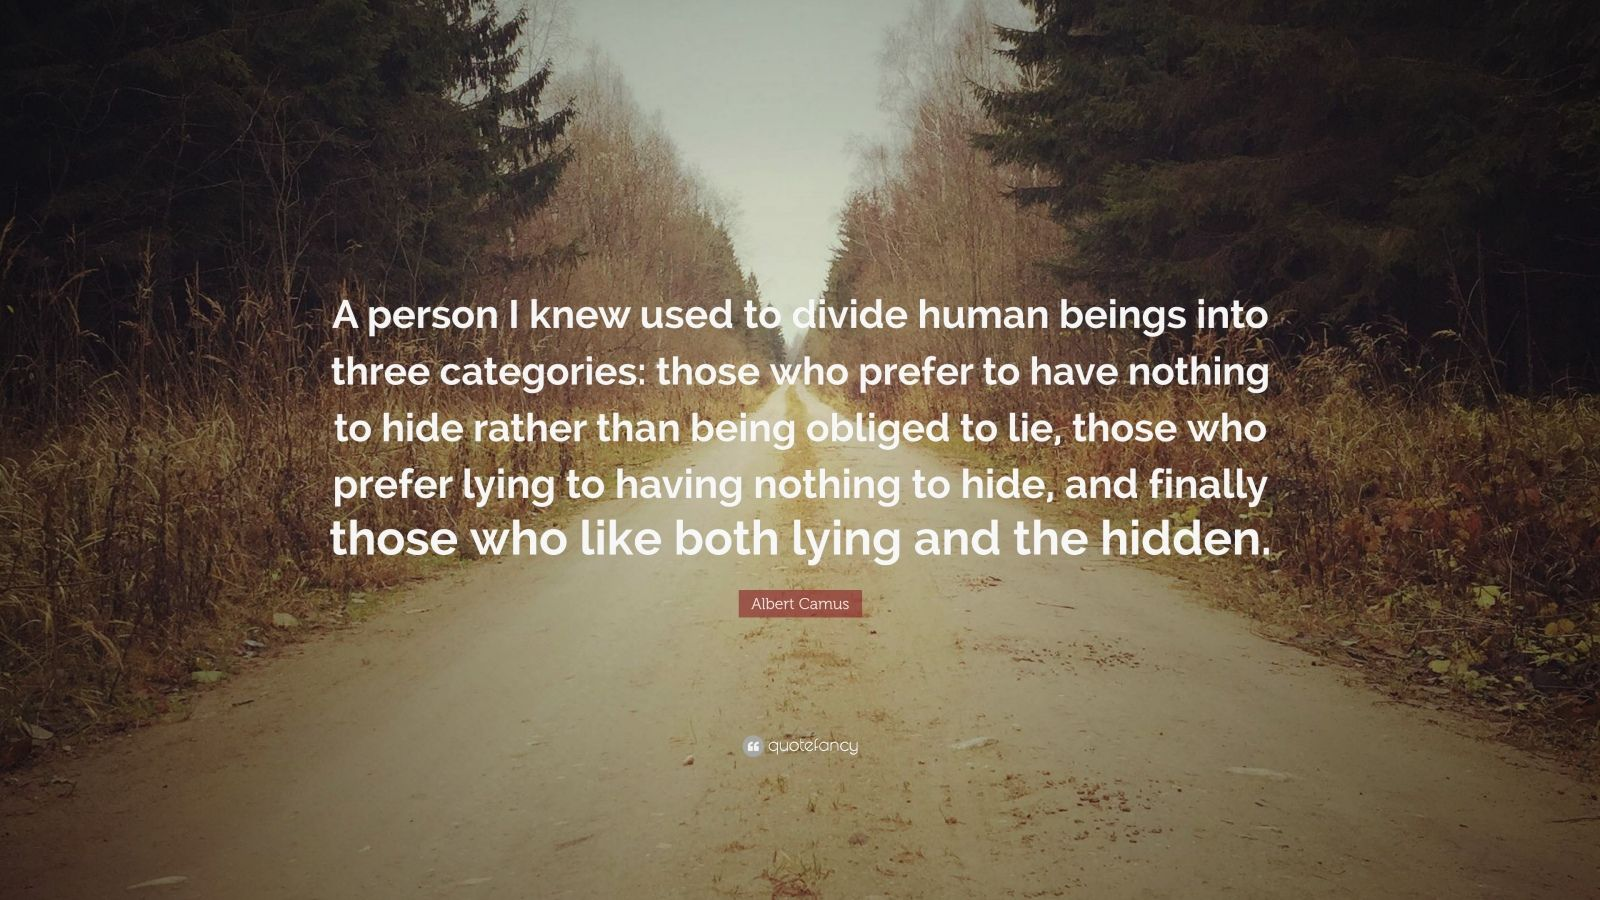 """Albert Camus Quote: """"A person I knew used to divide human beings into three categories: those who prefer to have nothing to hide rather than being obliged to lie, those who prefer lying to having nothing to hide, and finally those who like both lying and the hidden."""""""